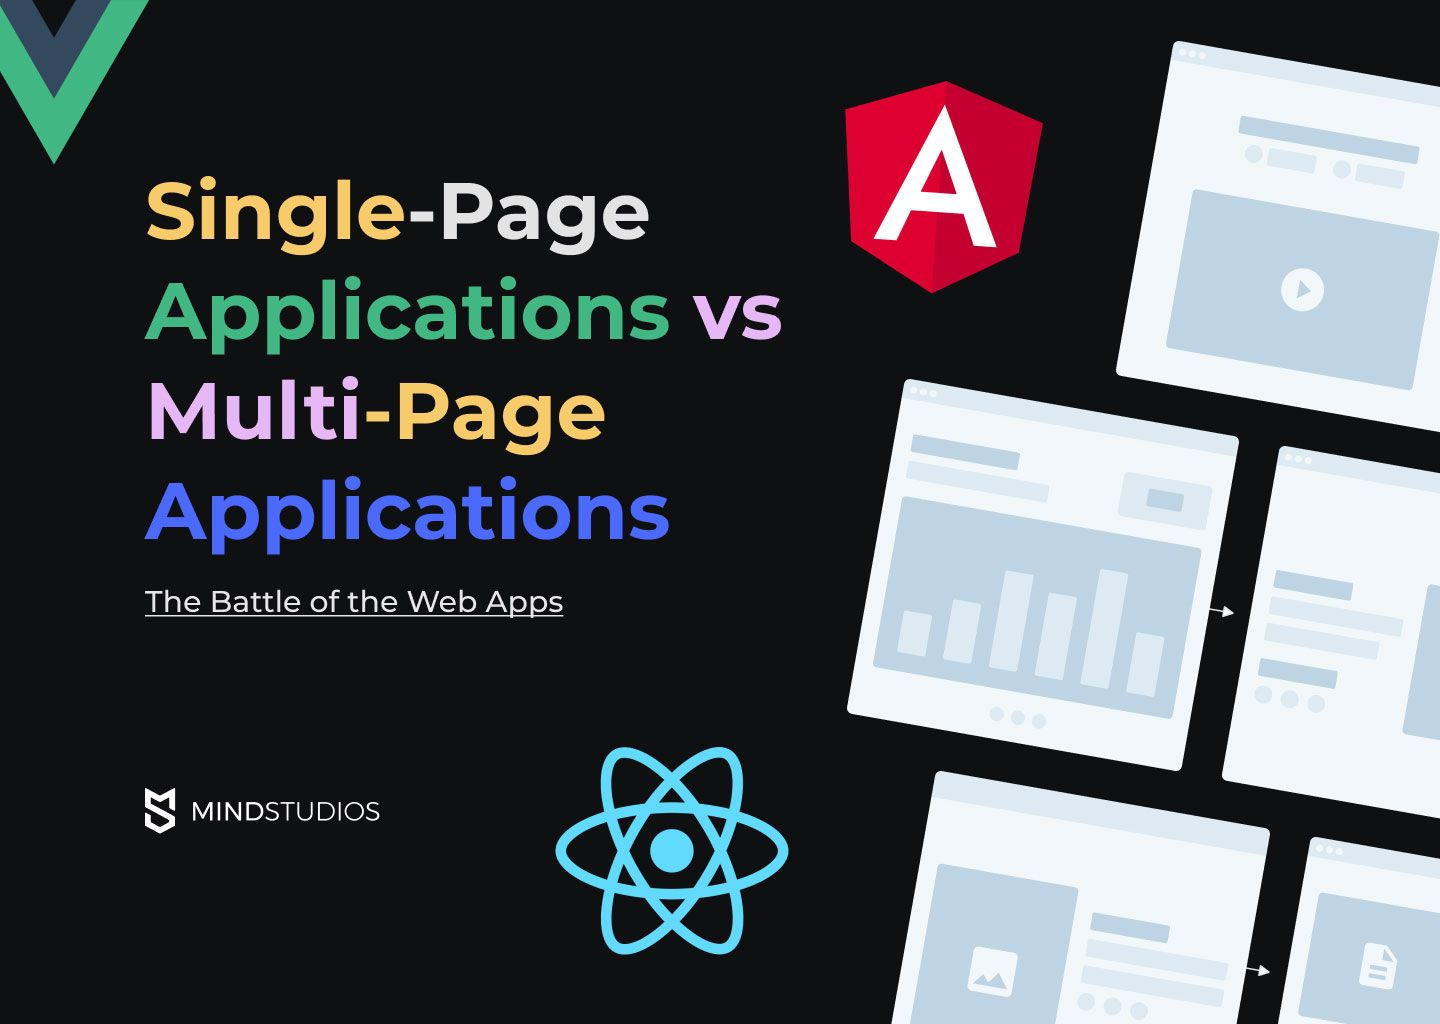 Single-Page Applications vs Multi-Page Applications: The Battle of the Web Apps